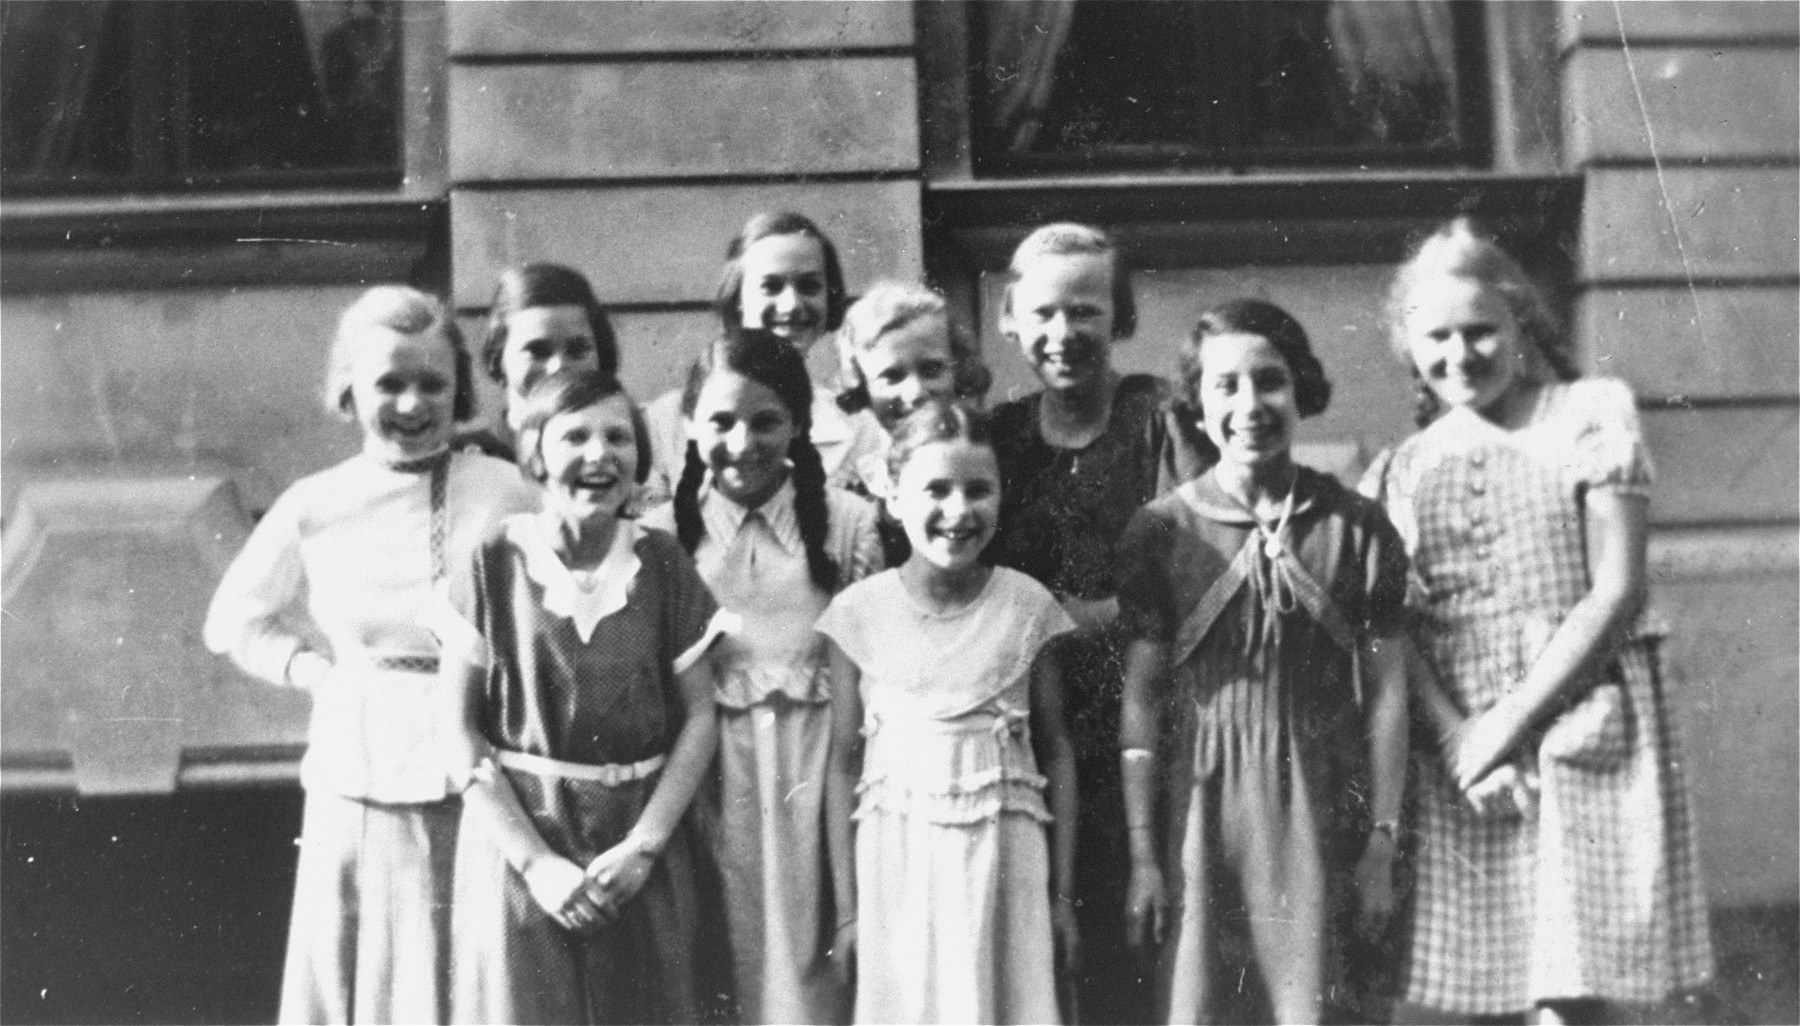 Group portrait of Jewish girls in Leipzig, Germany.  Among those pictured is Berta Rosenhein Hertz.